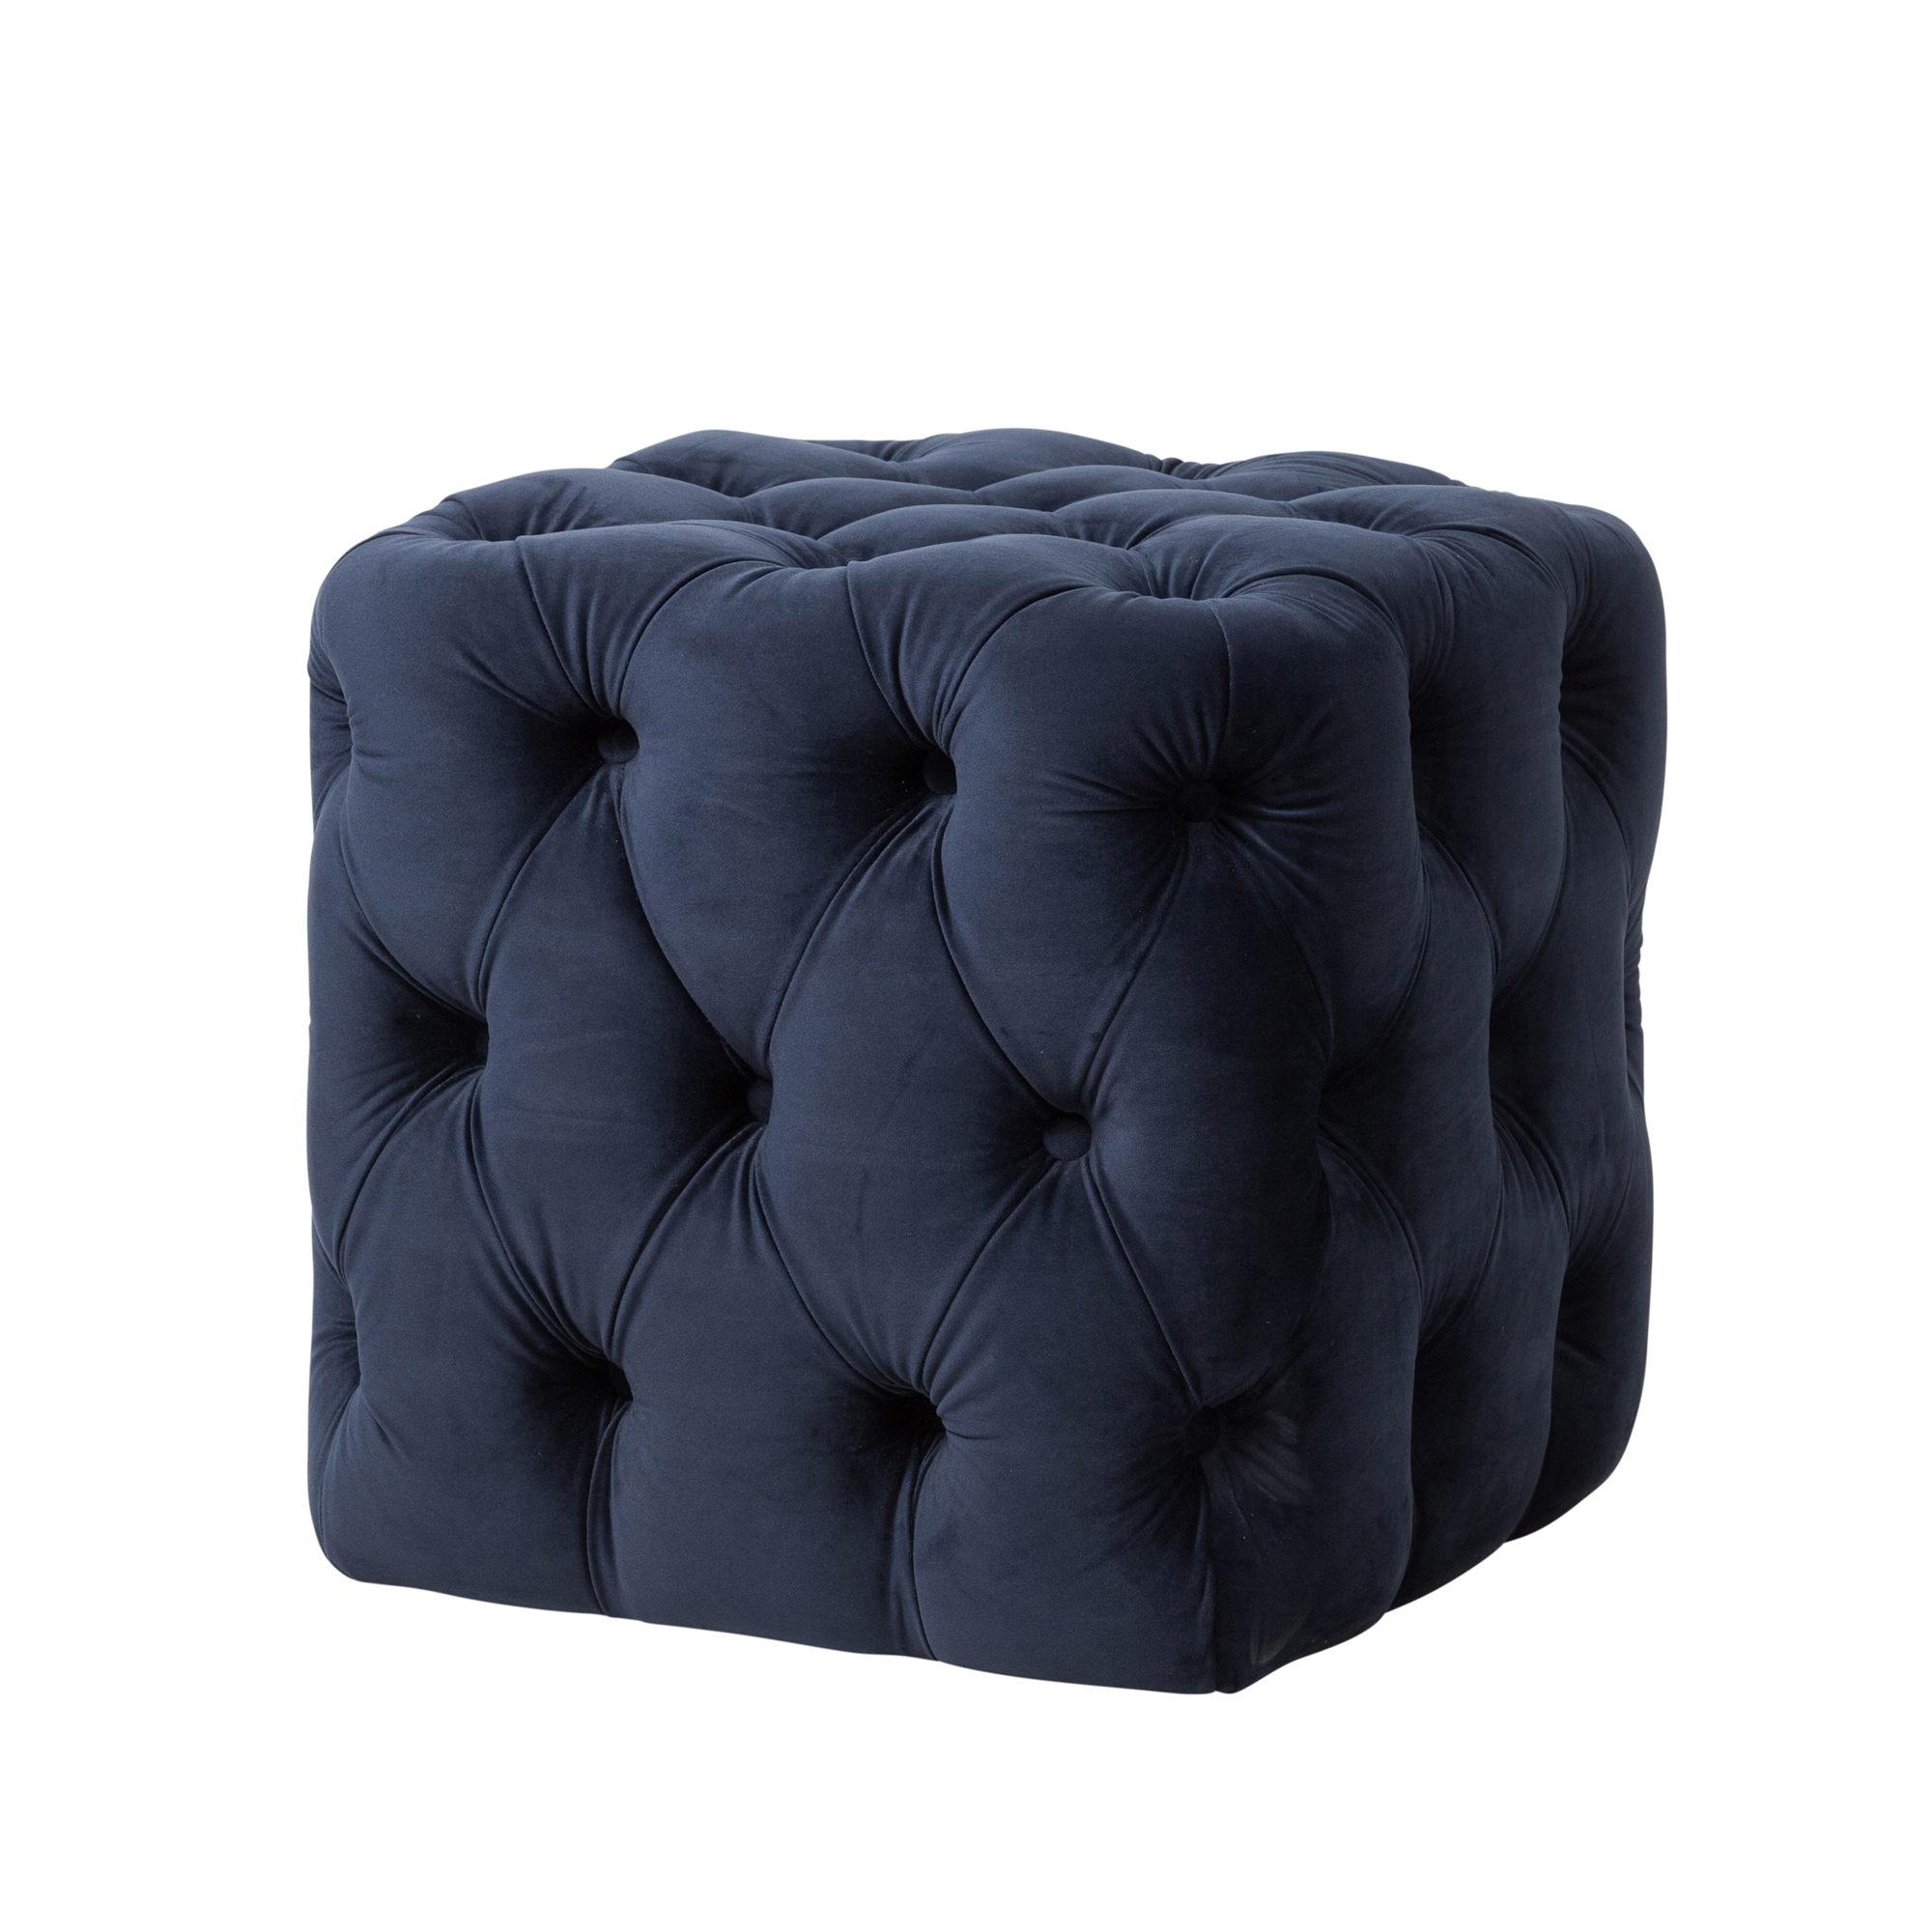 Superb Grace Tufted Ottoman In Navy Blue Velvet Bralicious Painted Fabric Chair Ideas Braliciousco